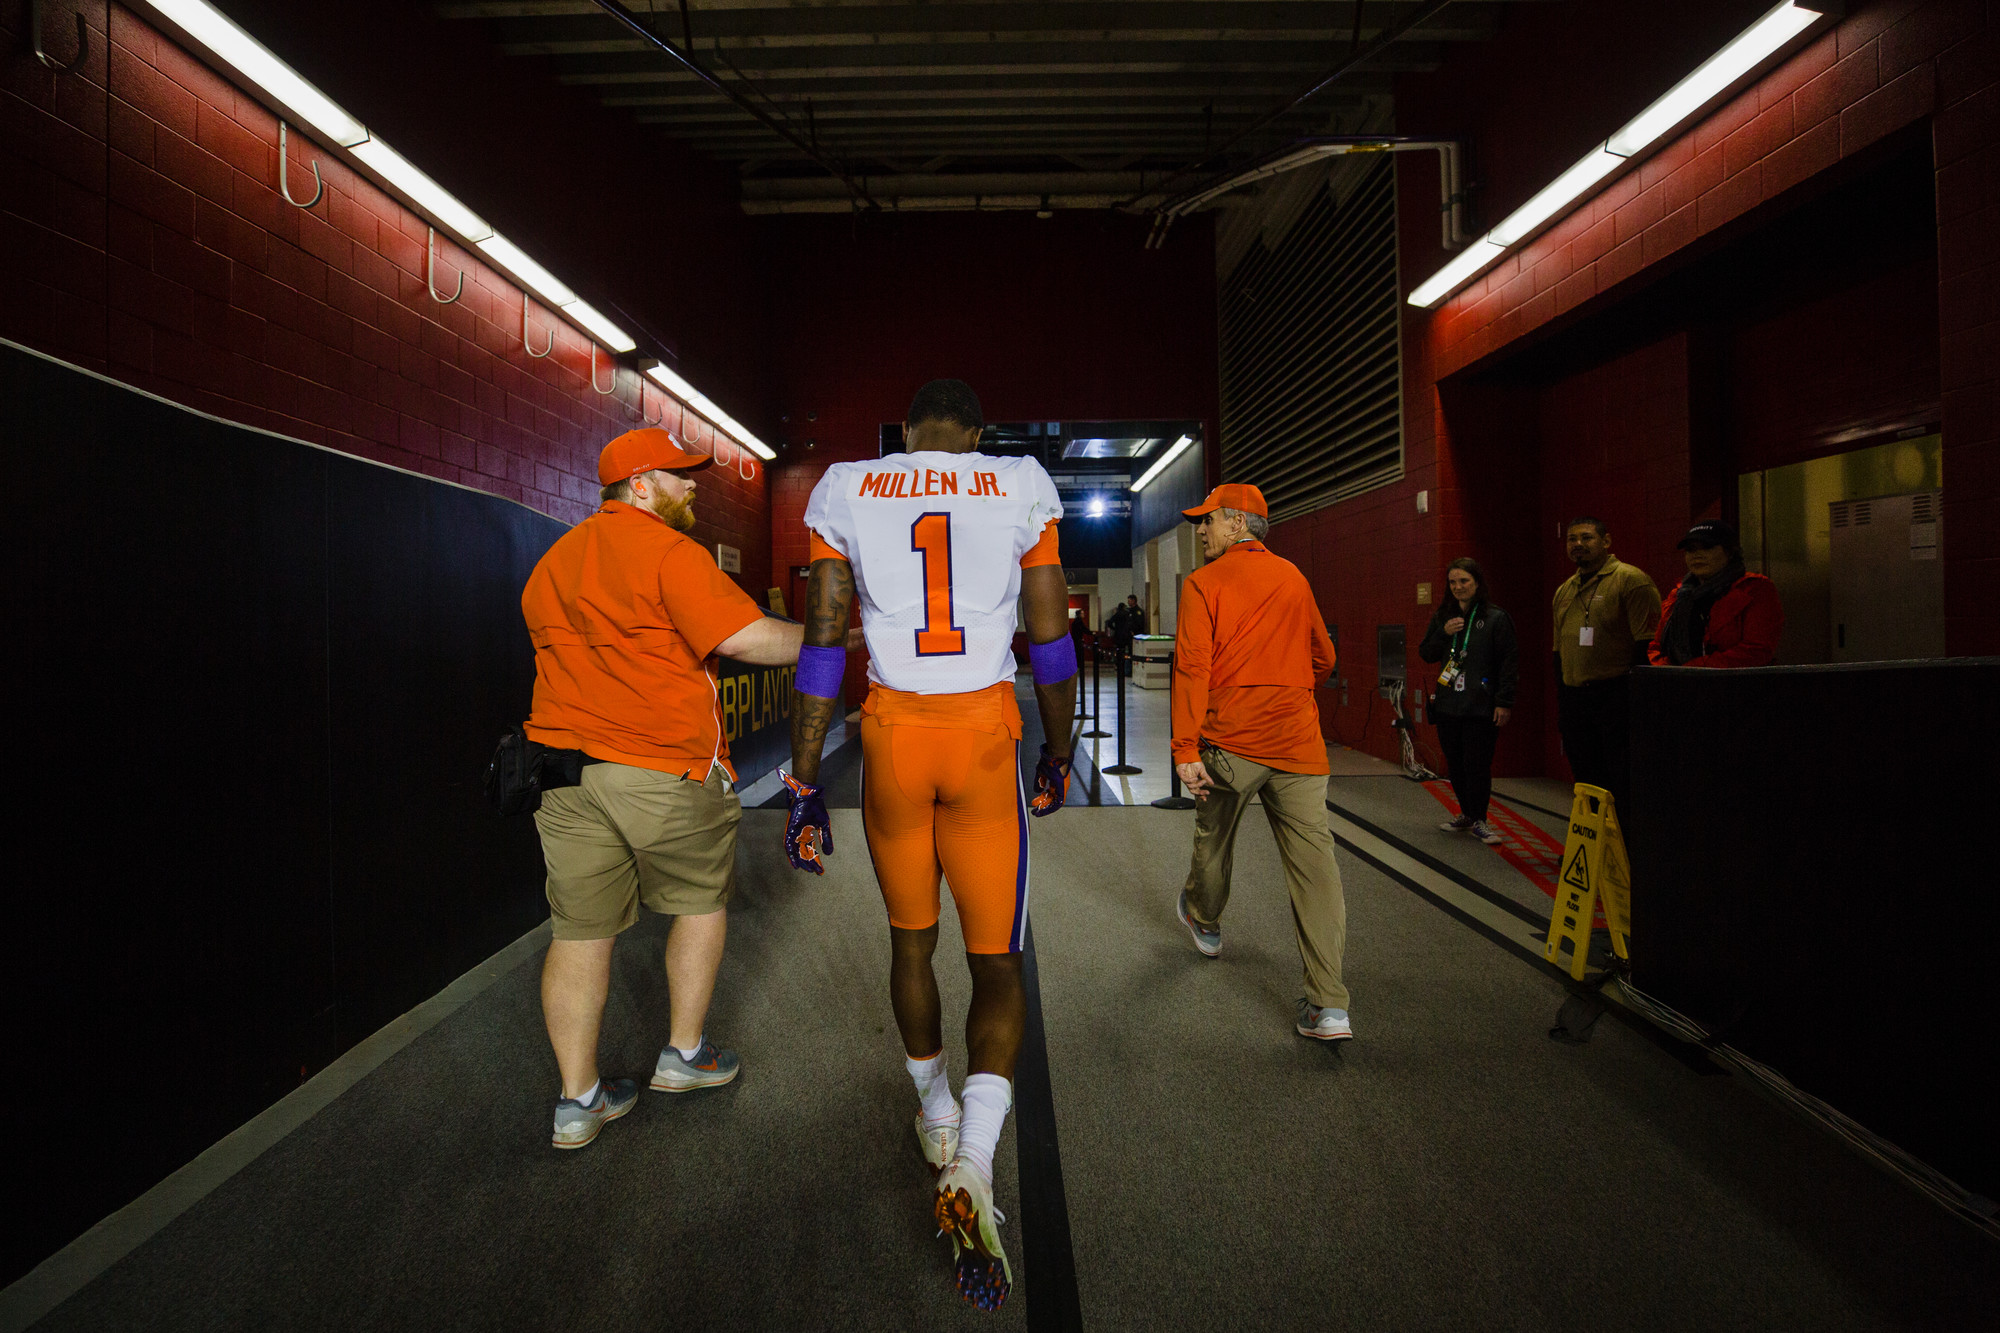 Clemson cornerback Trayvon Mullen, the game's defensive MVP, exits Levi's Stadium in Santa Clara, California, on Monday, Jan. 7 after the Tigers routed Alabama 44-16 to win the 2019 CFP National Championship.